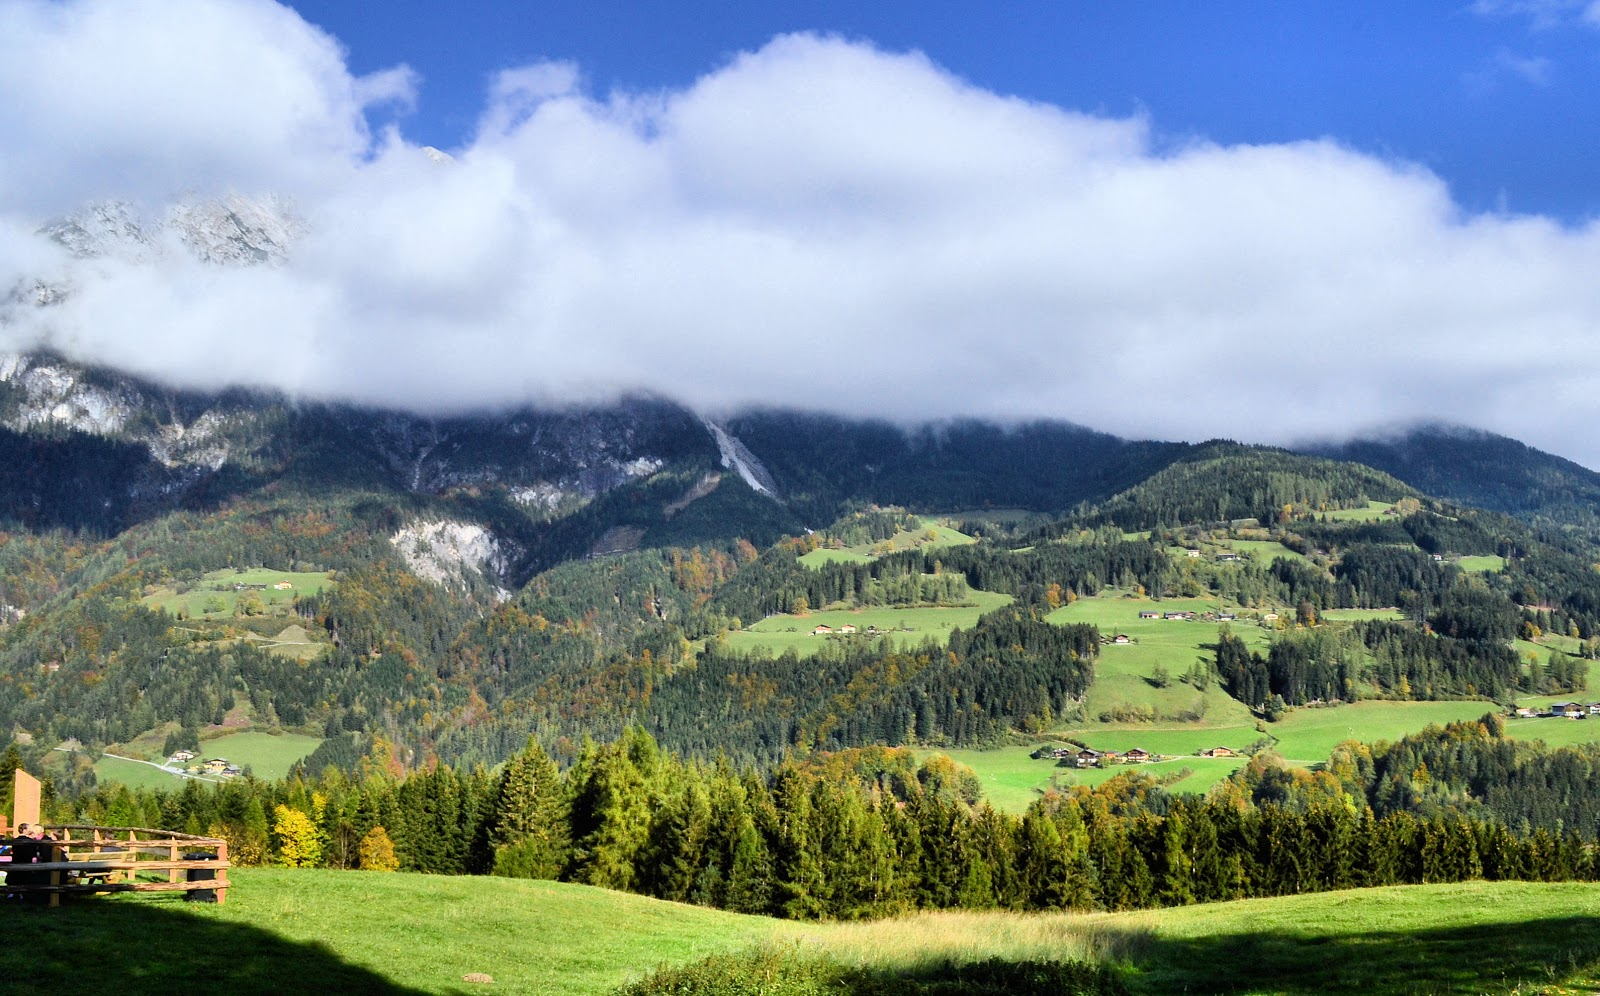 Alpine landscapes abound when exploring Europe on foot. Photo:© EuroTravelogue. Unauthorized use is prohibited.